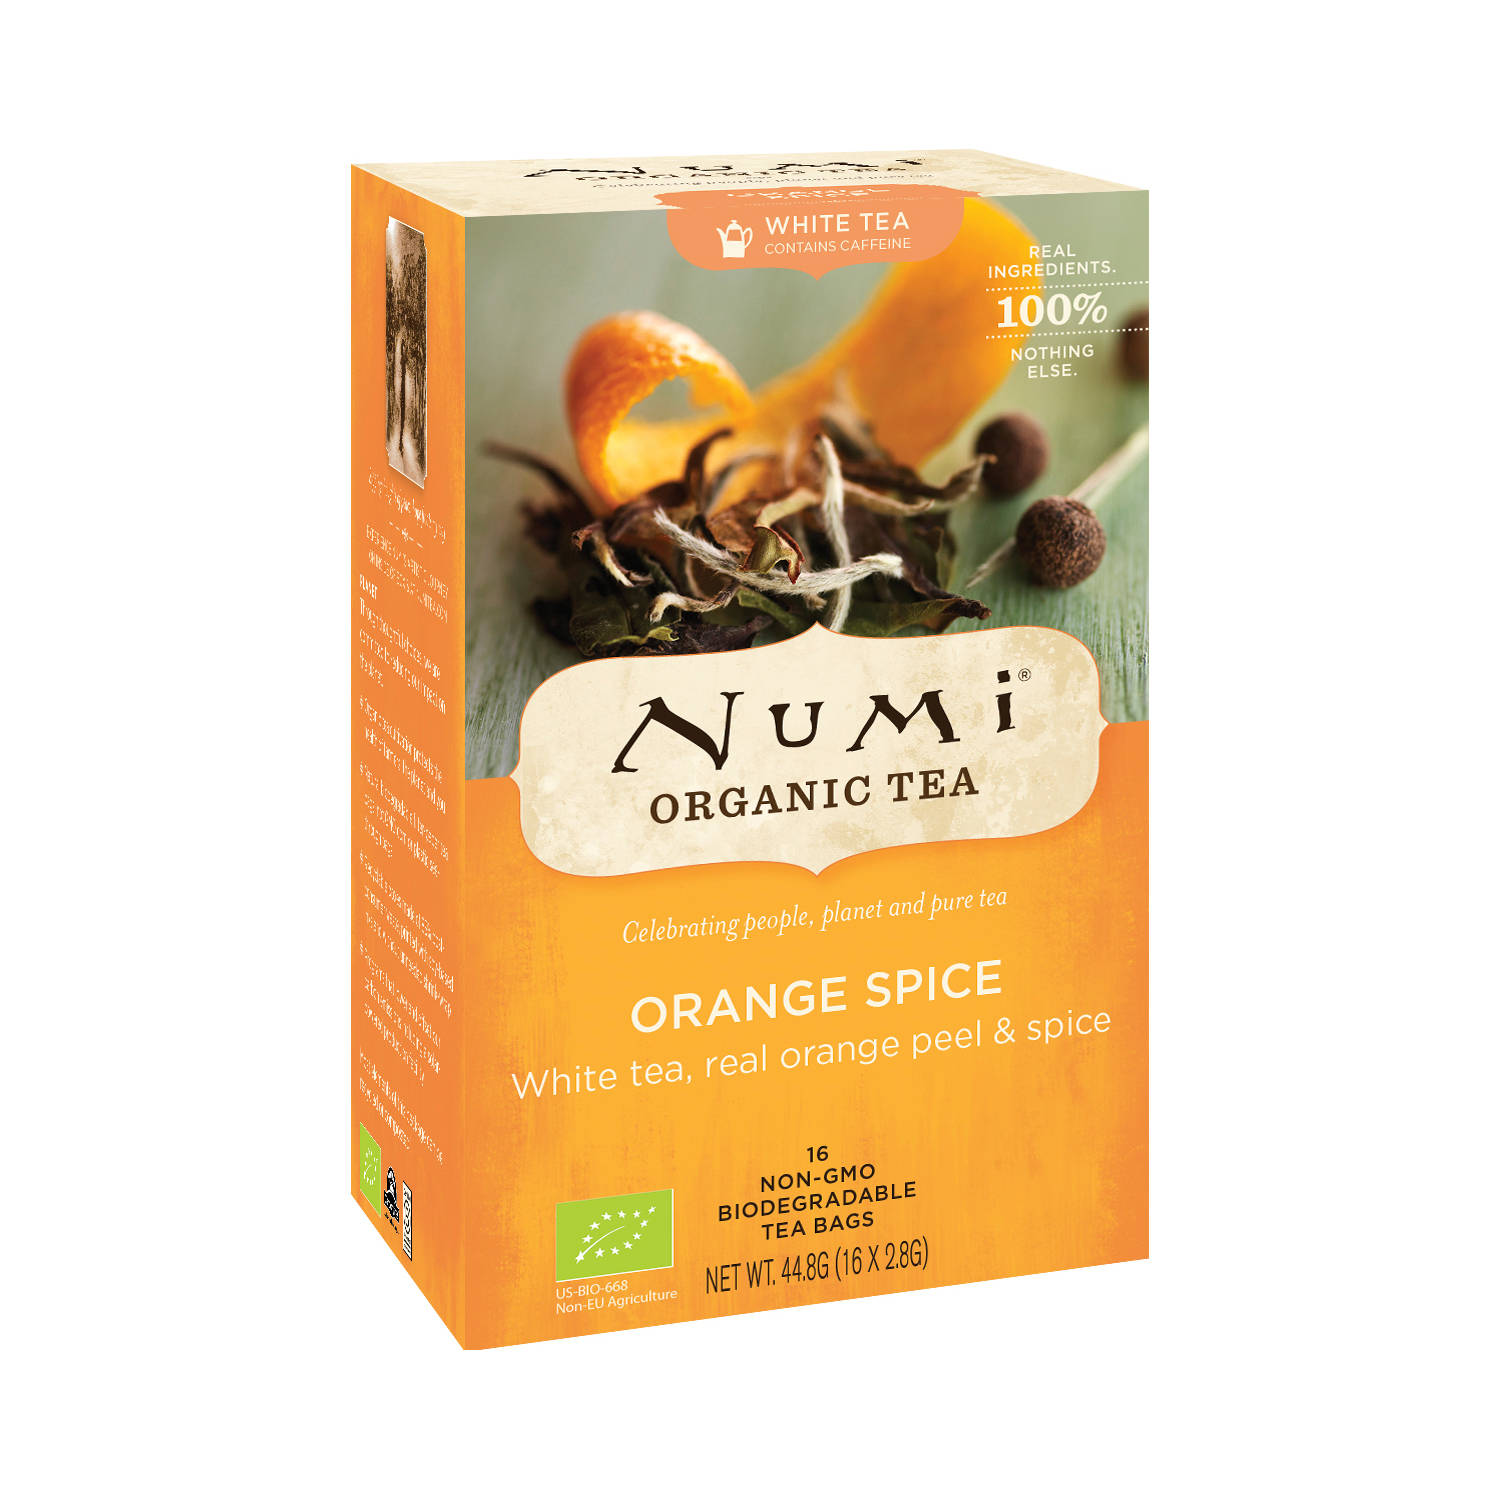 Numi Organic Tea Orange Spice, bílý čaj 44,8 g, 16 ks